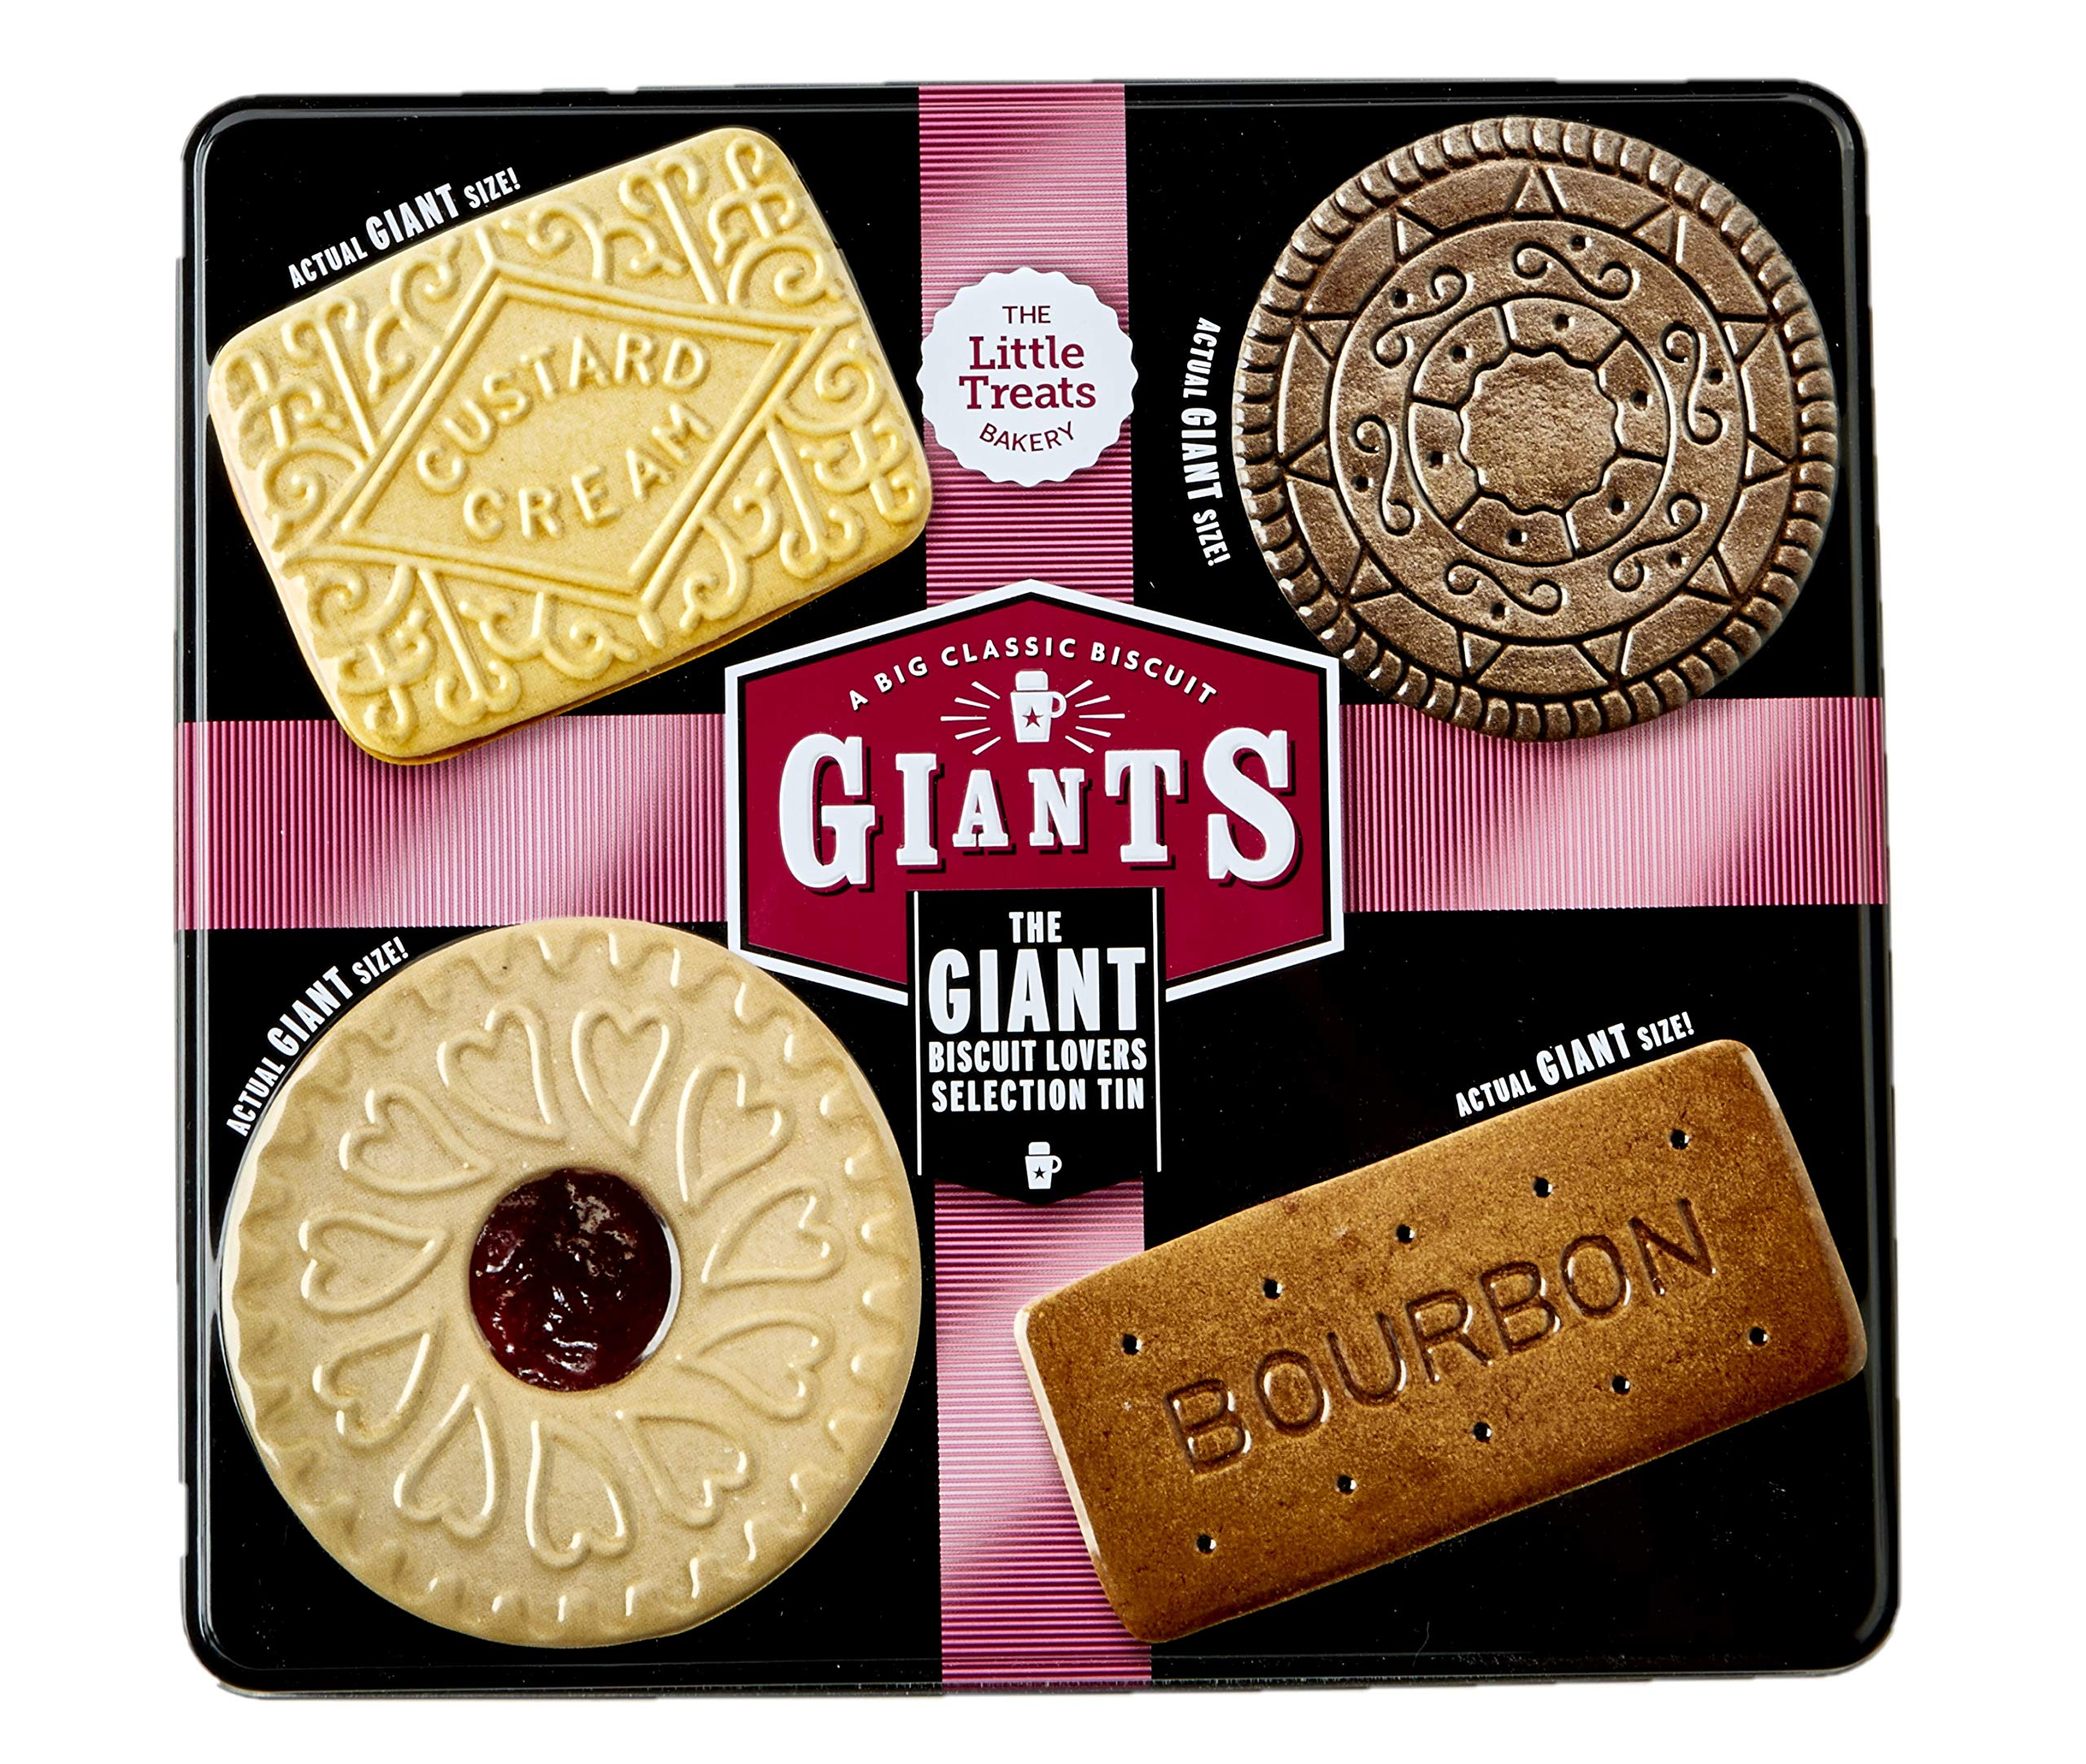 GIANTS Selection TIN - Classic Biscuits Giant Sized (Bourbon, Custard Cream, Jammy Sandwich, Cookies and Cream)